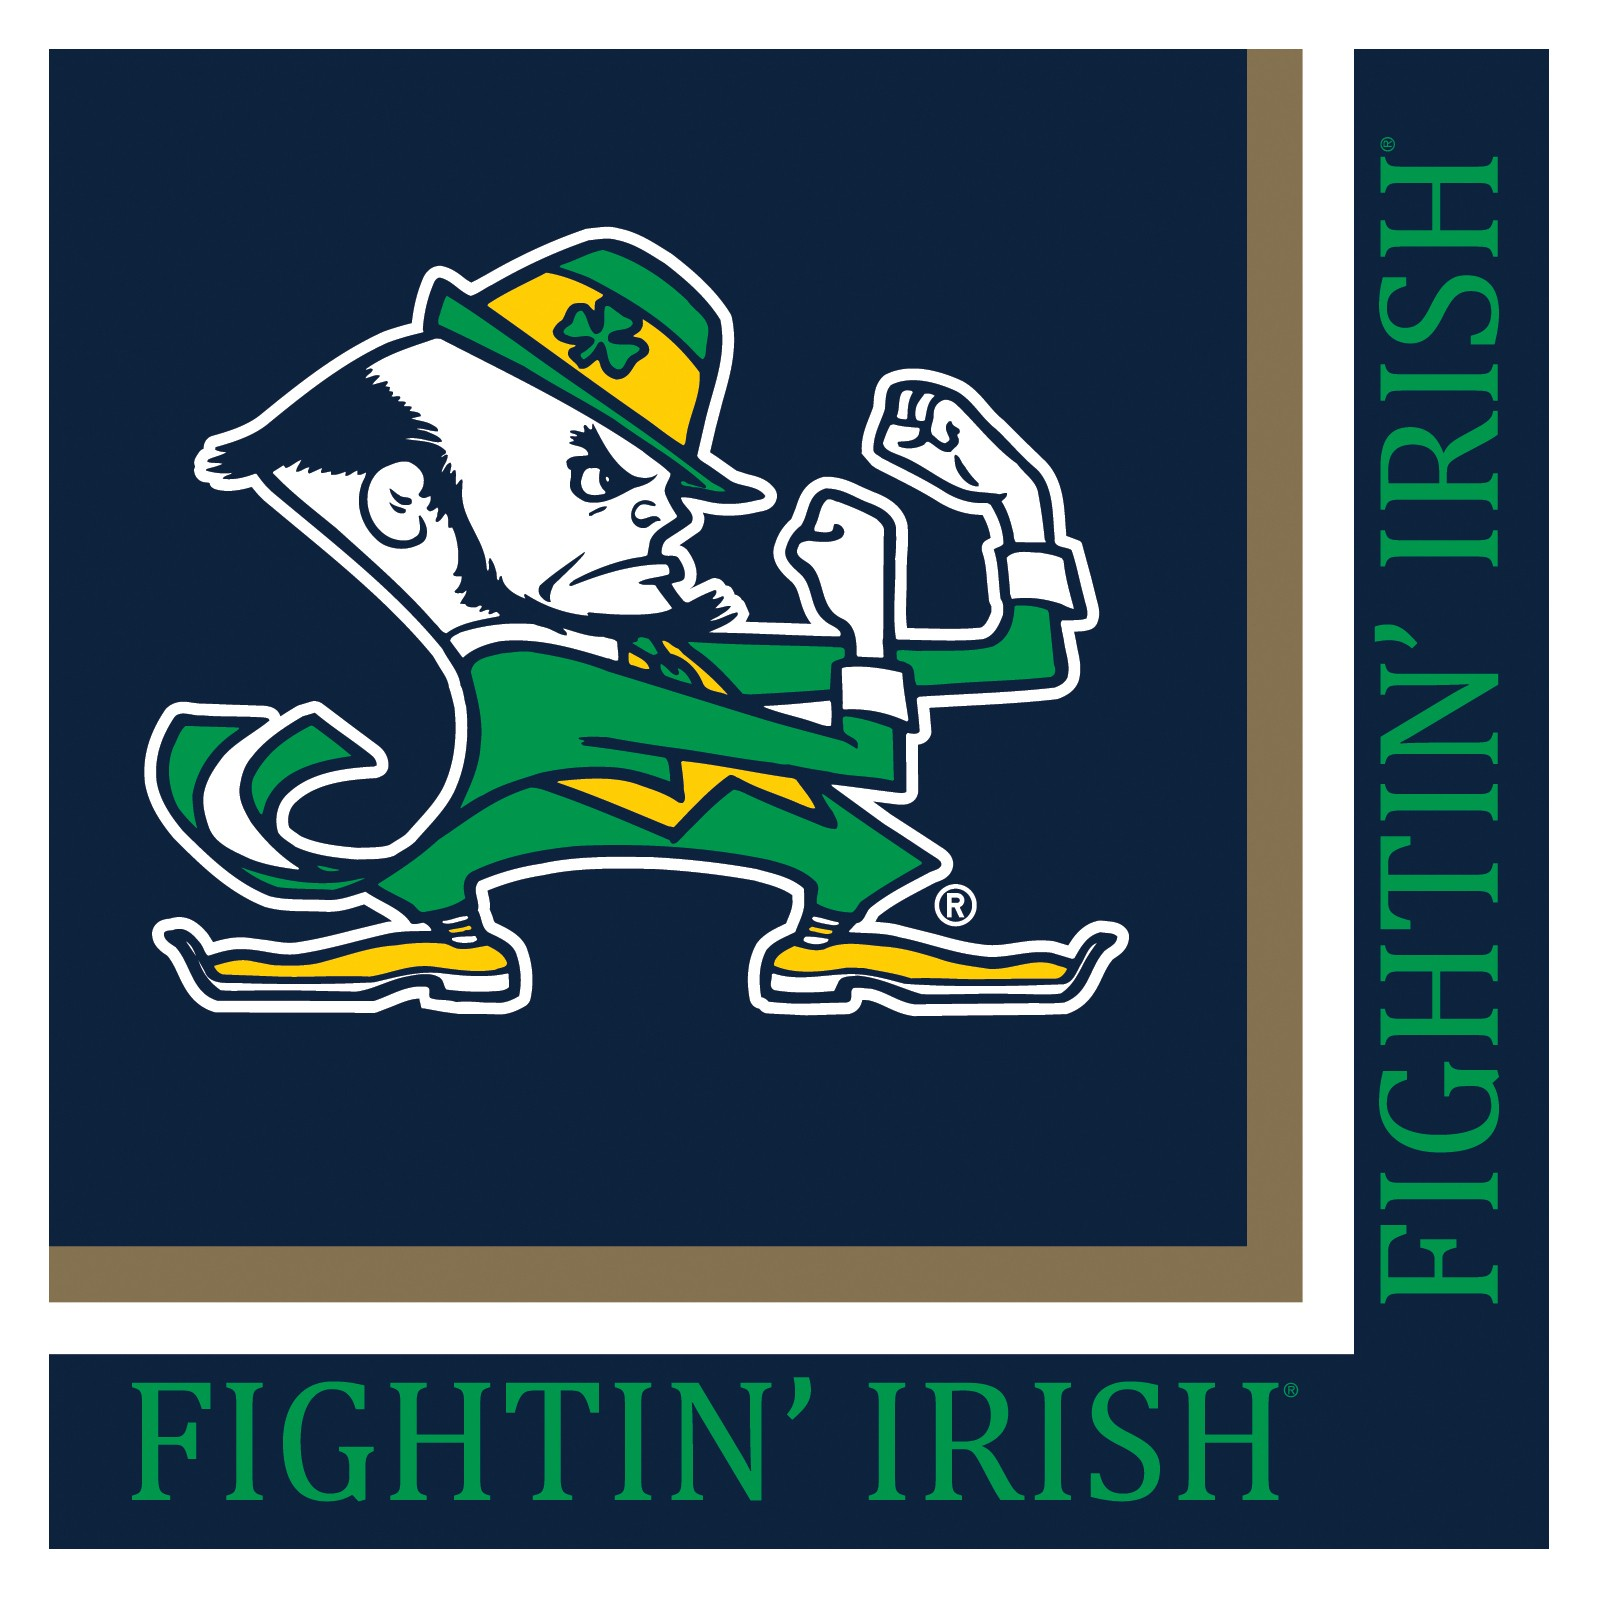 Fighting Irish Wallpaper puter WallpaperSafari